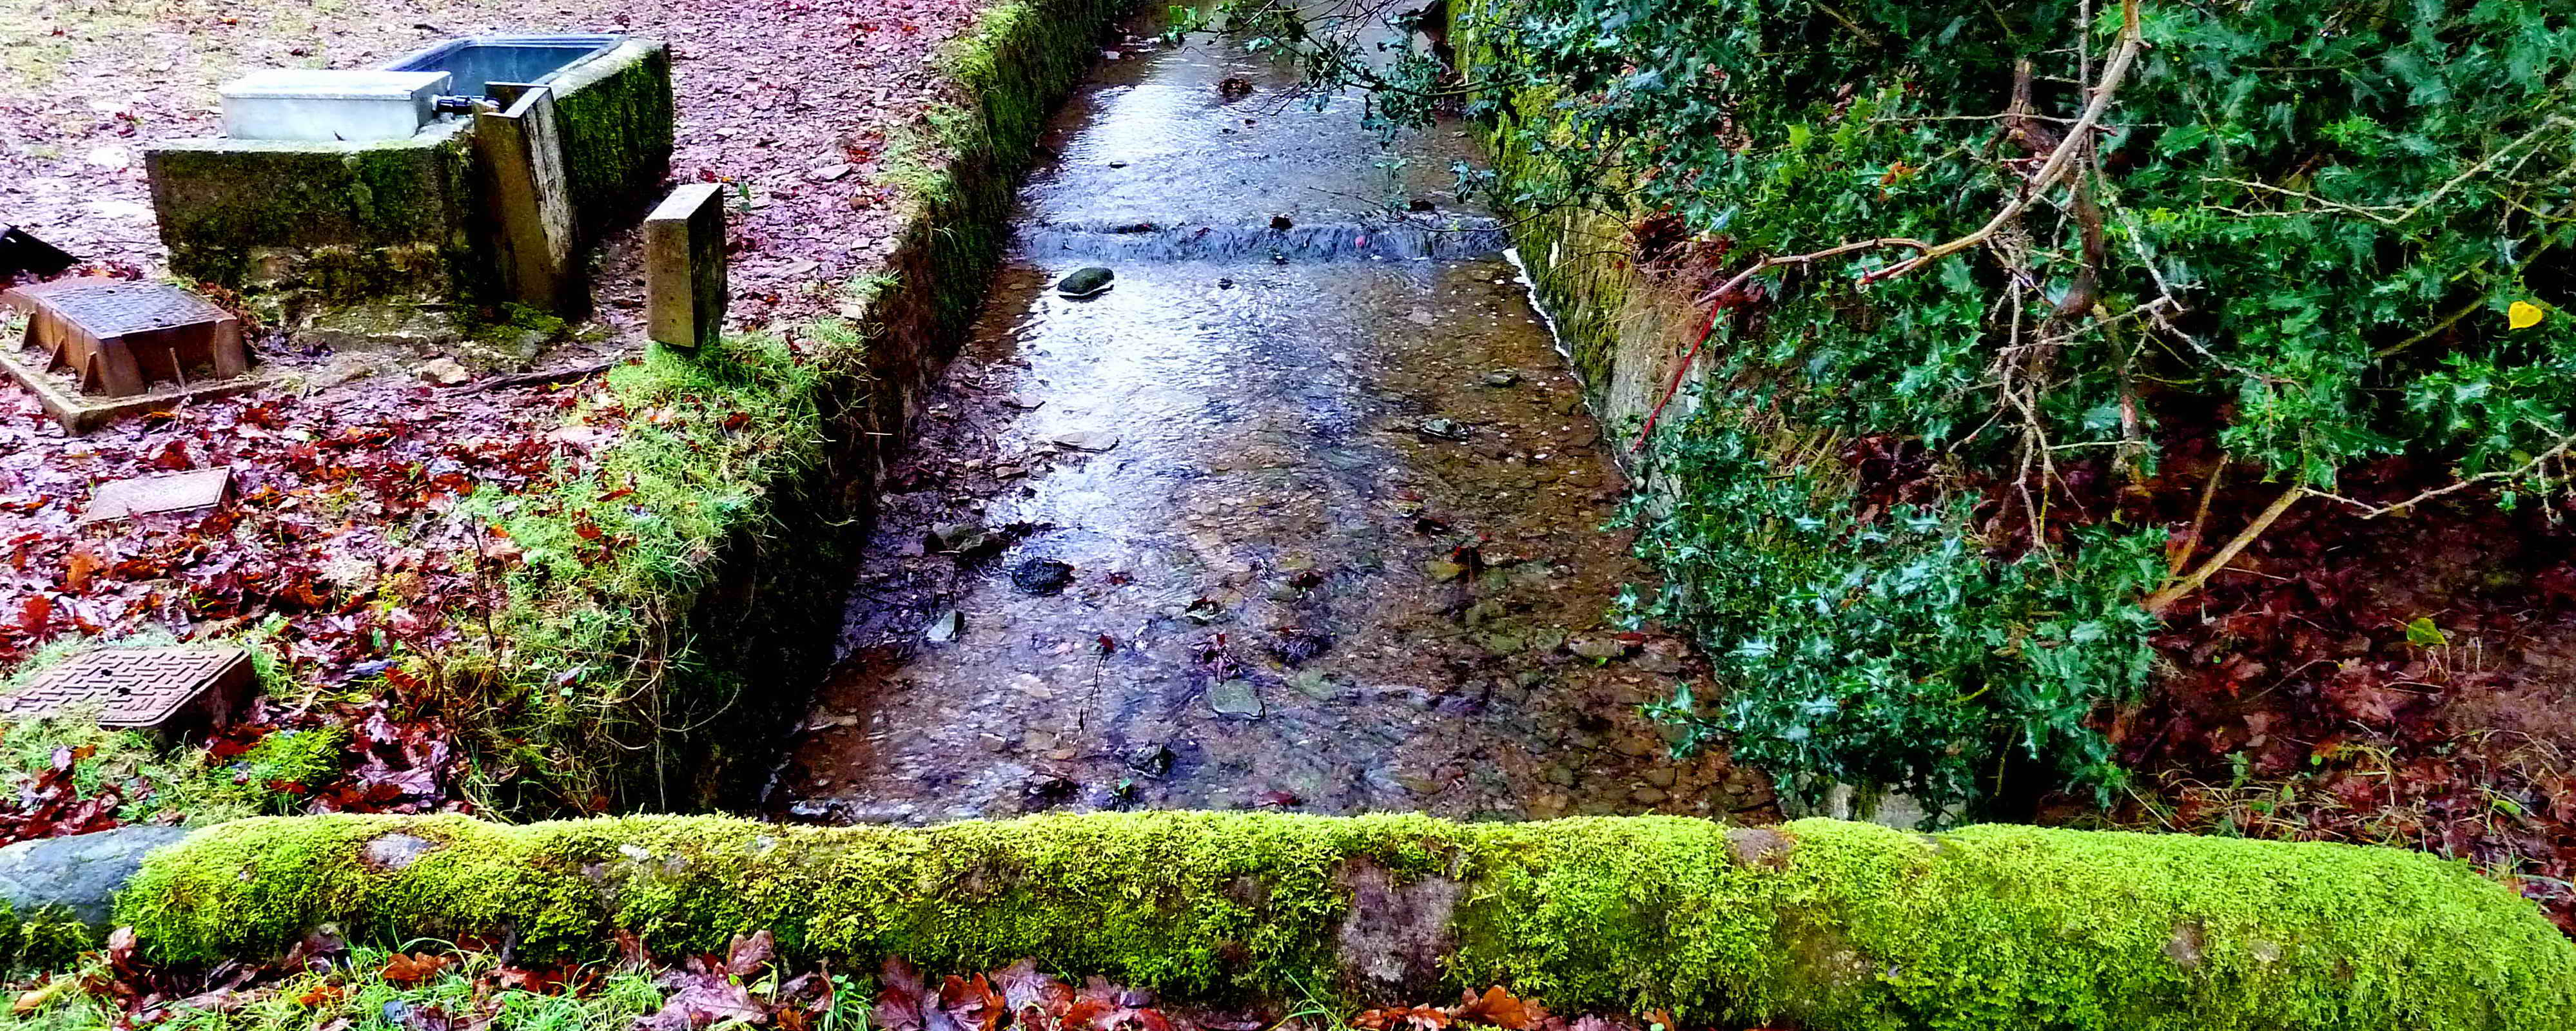 Water flowing in Drake's Plymouth Leat at the point where it passes a drinking trough for livestock and enters private fields.